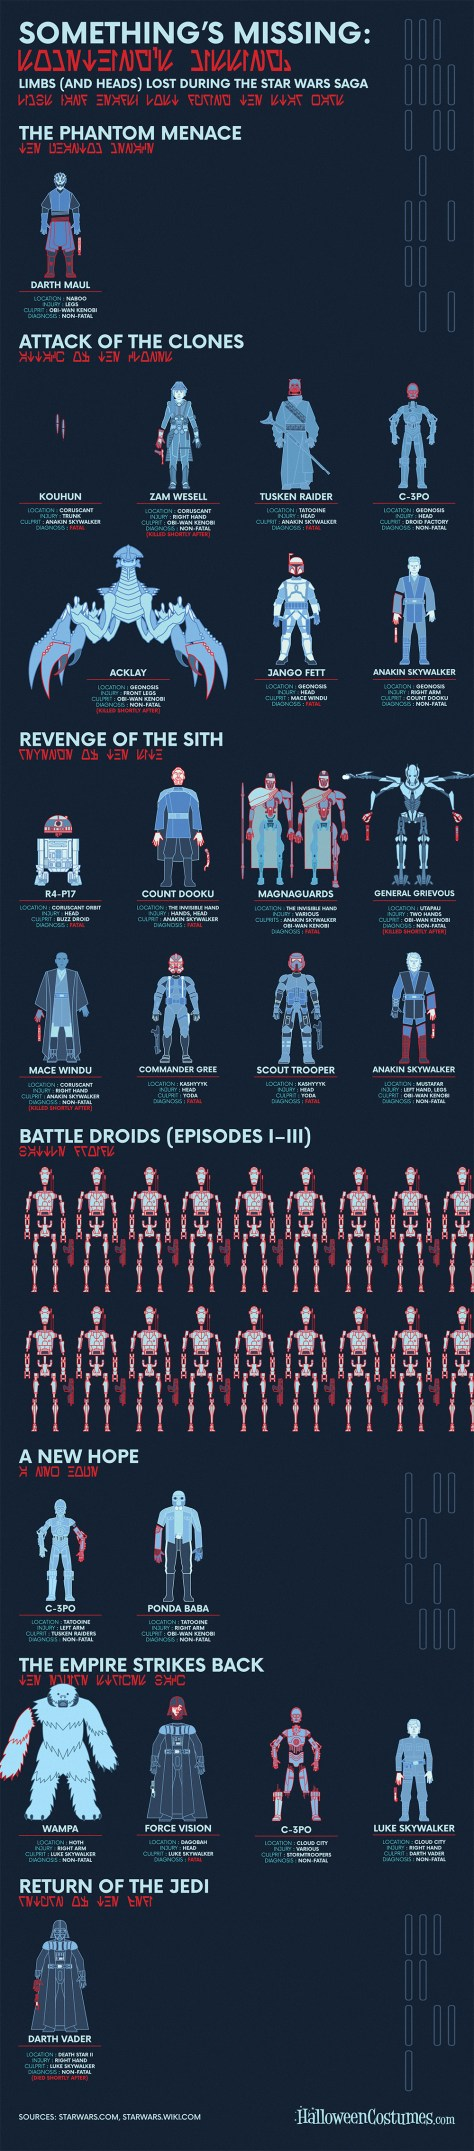 Star Wars Limb Loss Infographic